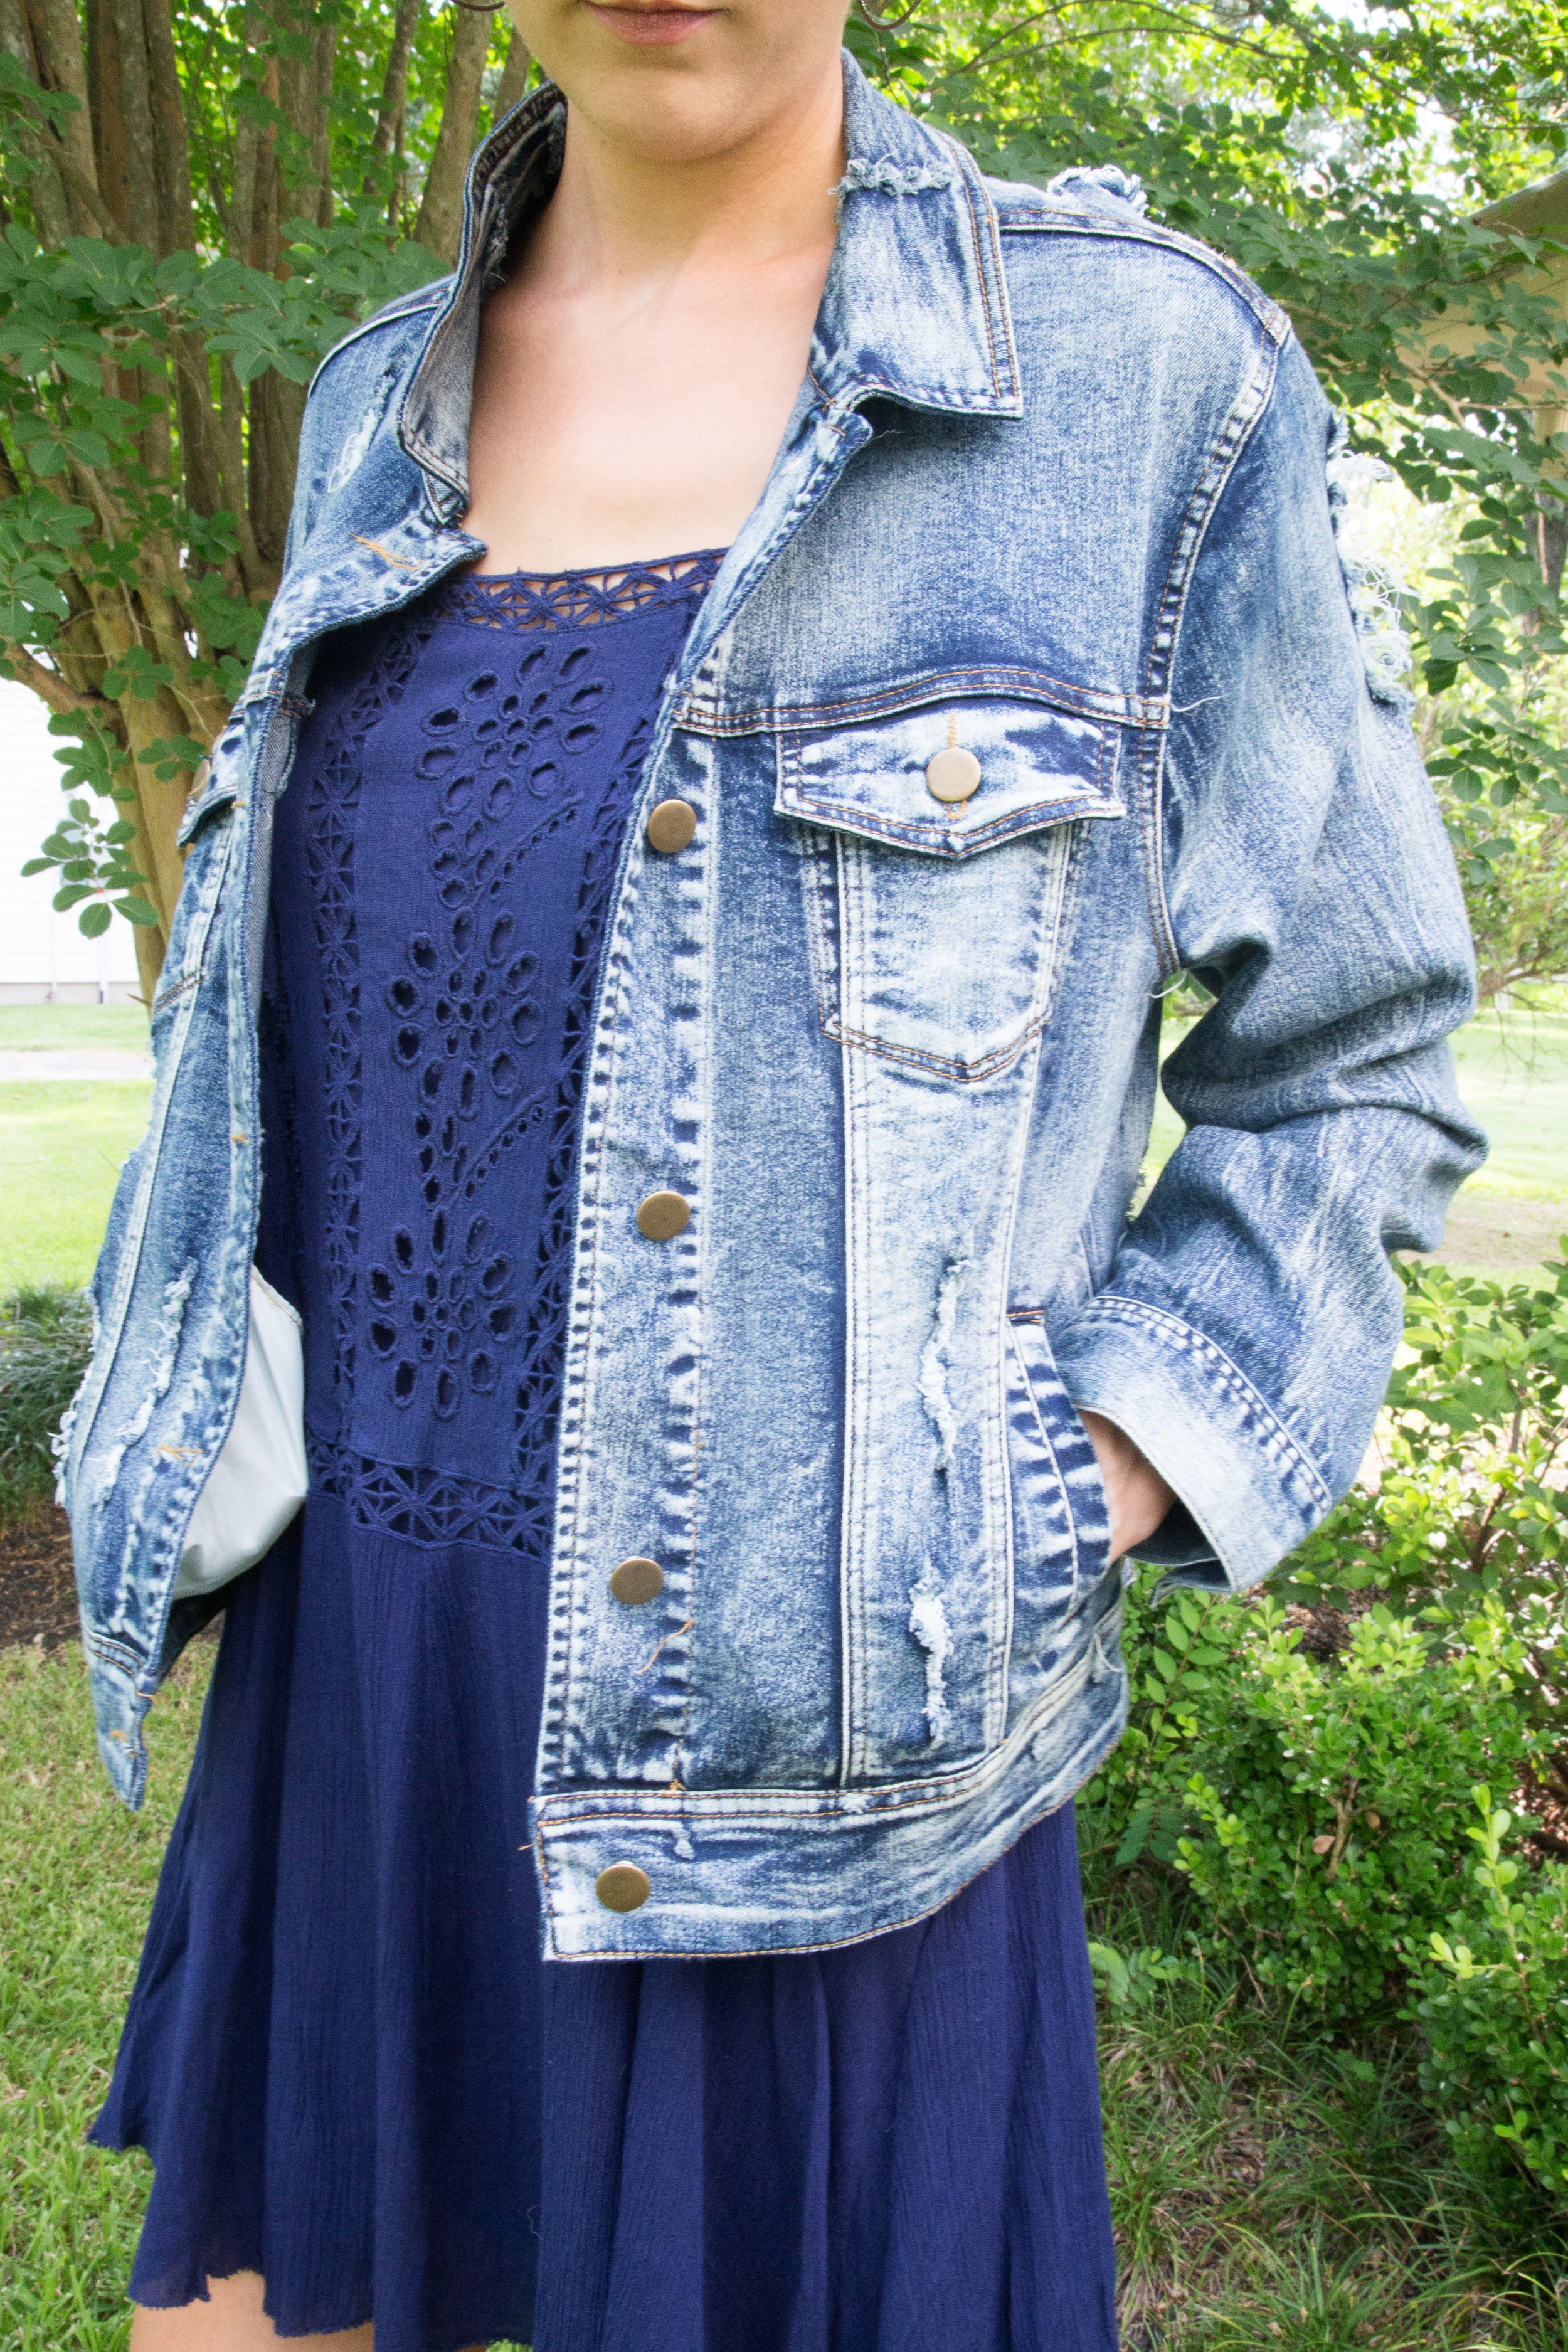 I love how a simple piece can completely change the look and feel of an outfit. This denim jacket dresses it down a little bit but at the same time it gives it a casual-chic vibe. You can see how I paired this denim jacket with a tee shirt dress  here .https://www.mintedmod.com/home-1/2018/8/11/urban-outfitters-t-shirt-dress